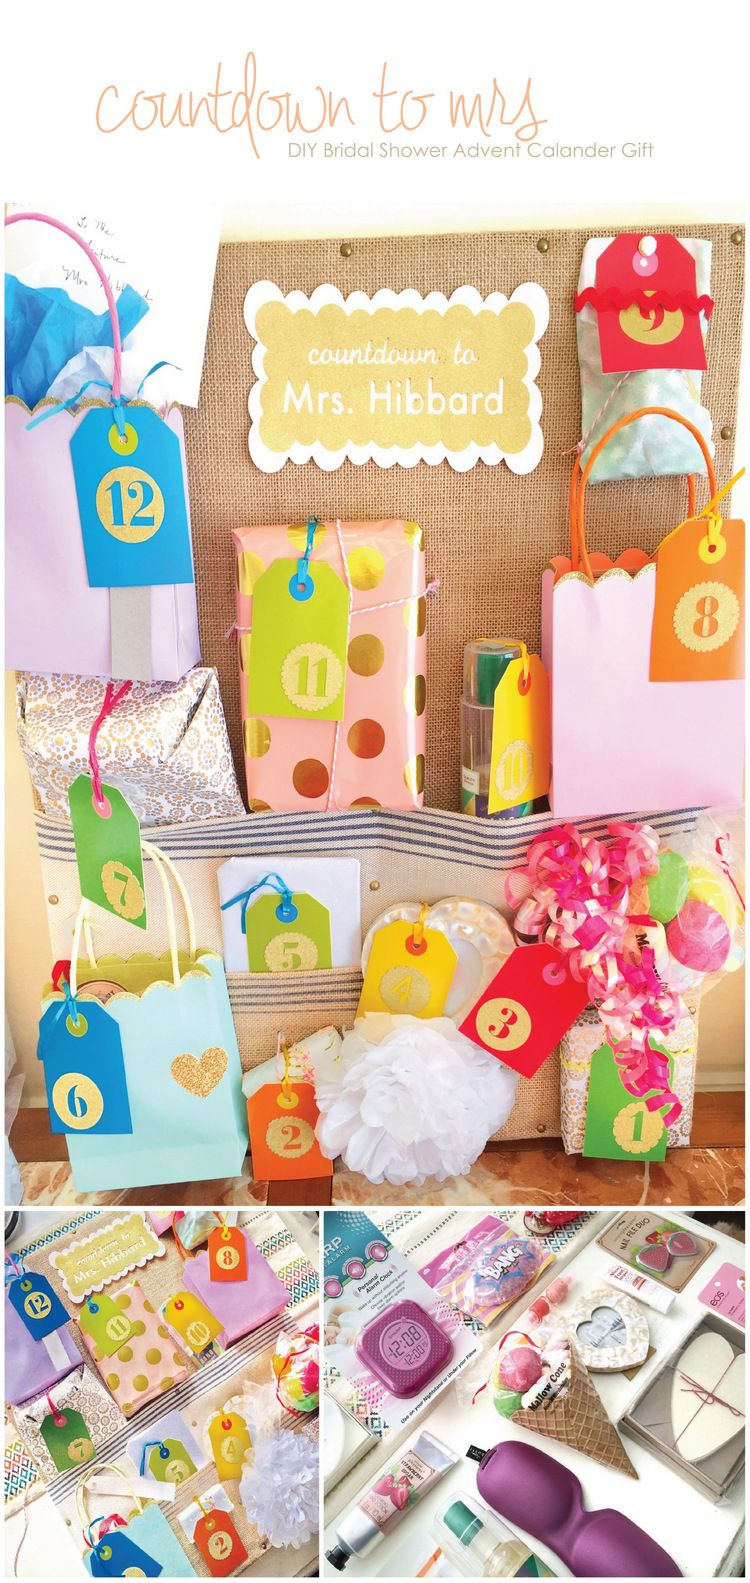 Advent Calendar Ideas Wedding : Diy bridal shower advent calendar gift fun ideas